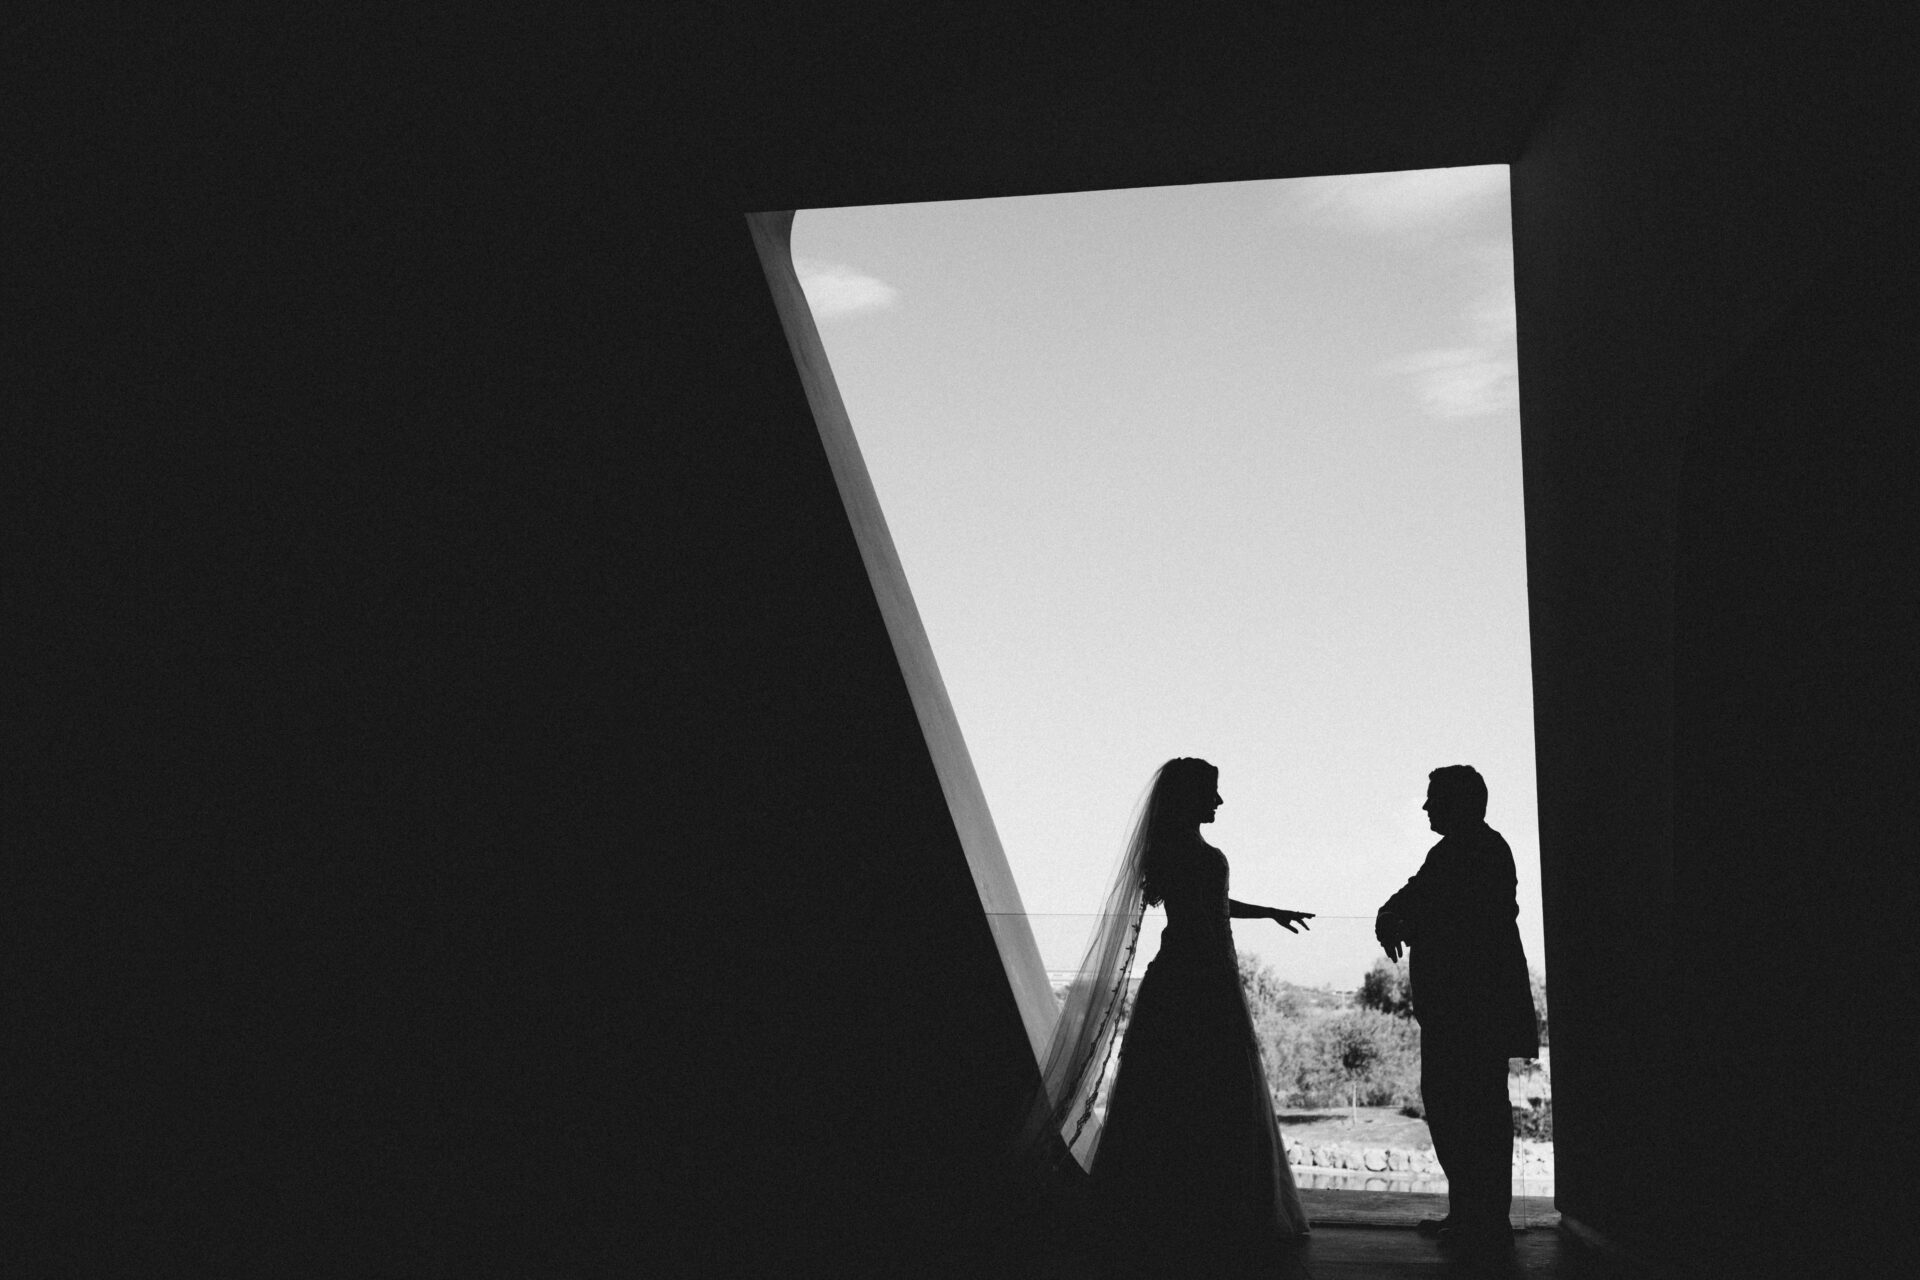 javier_noriega_fotografo_bodas_torreon_coahuila_zacatecas_wedding_photographer24a